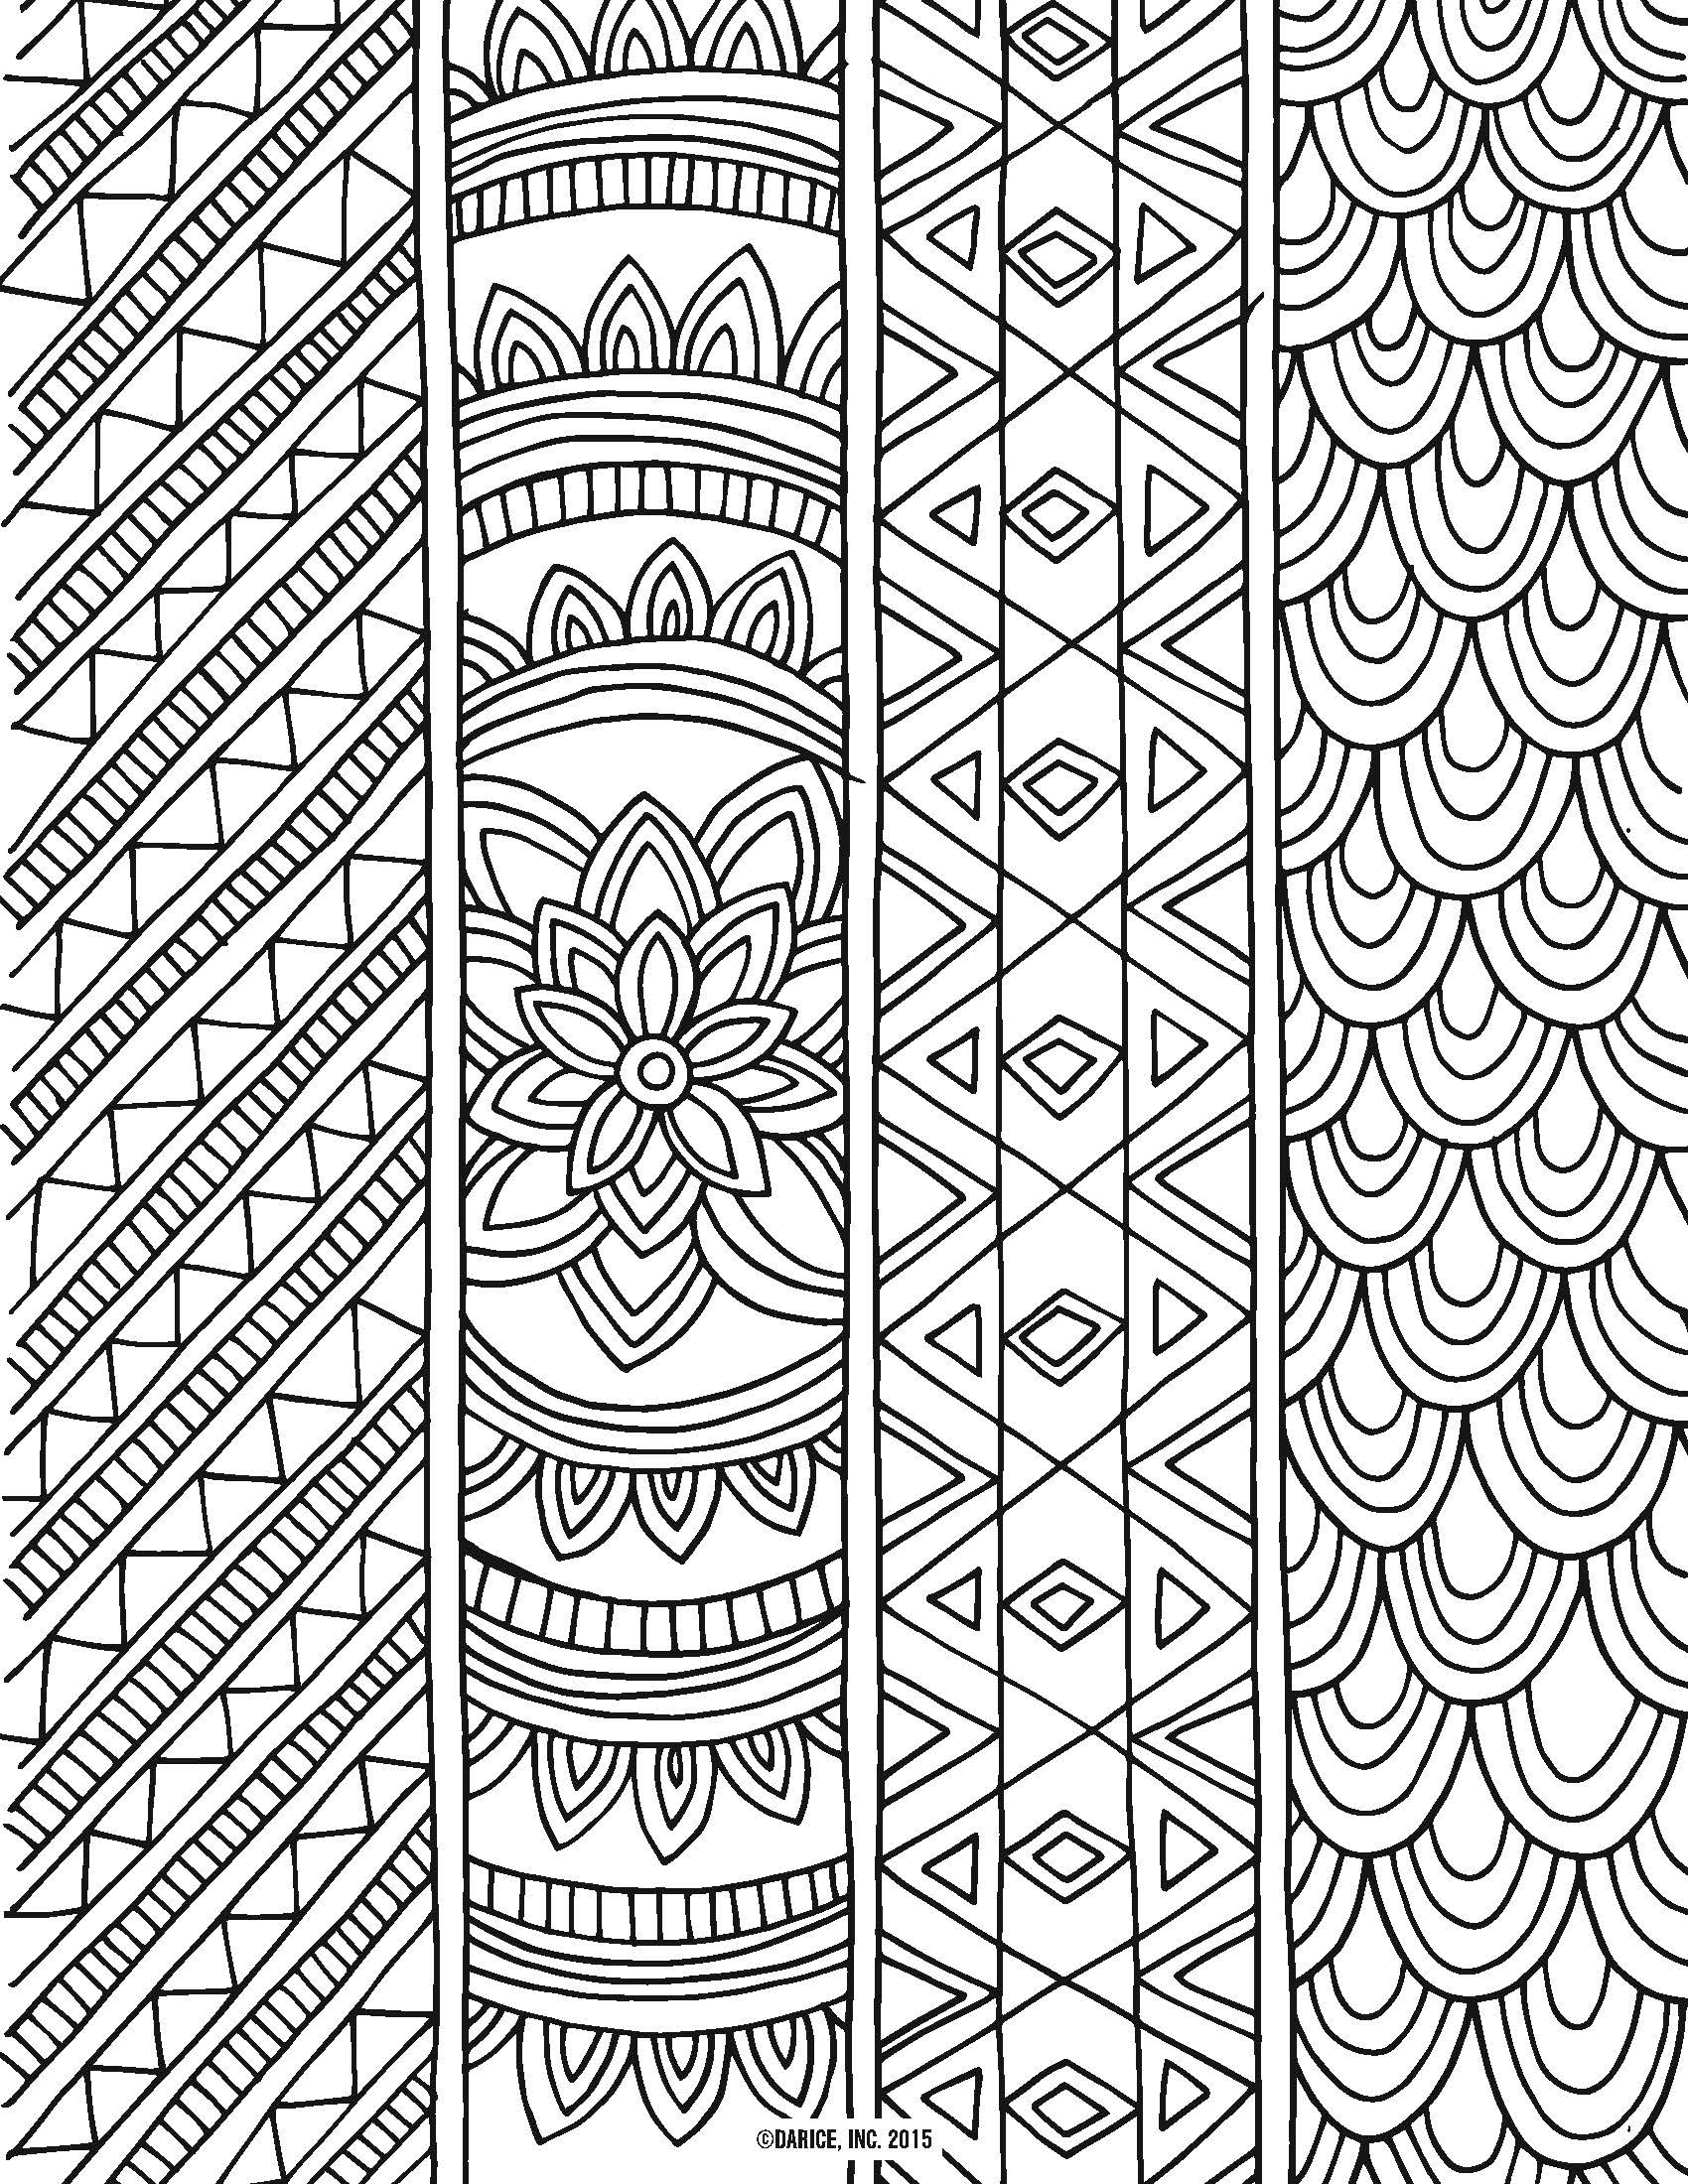 9 Free Printable Adult Coloring Pages | Pat Catan's Blog - Free Printable Coloring Pages For Adults